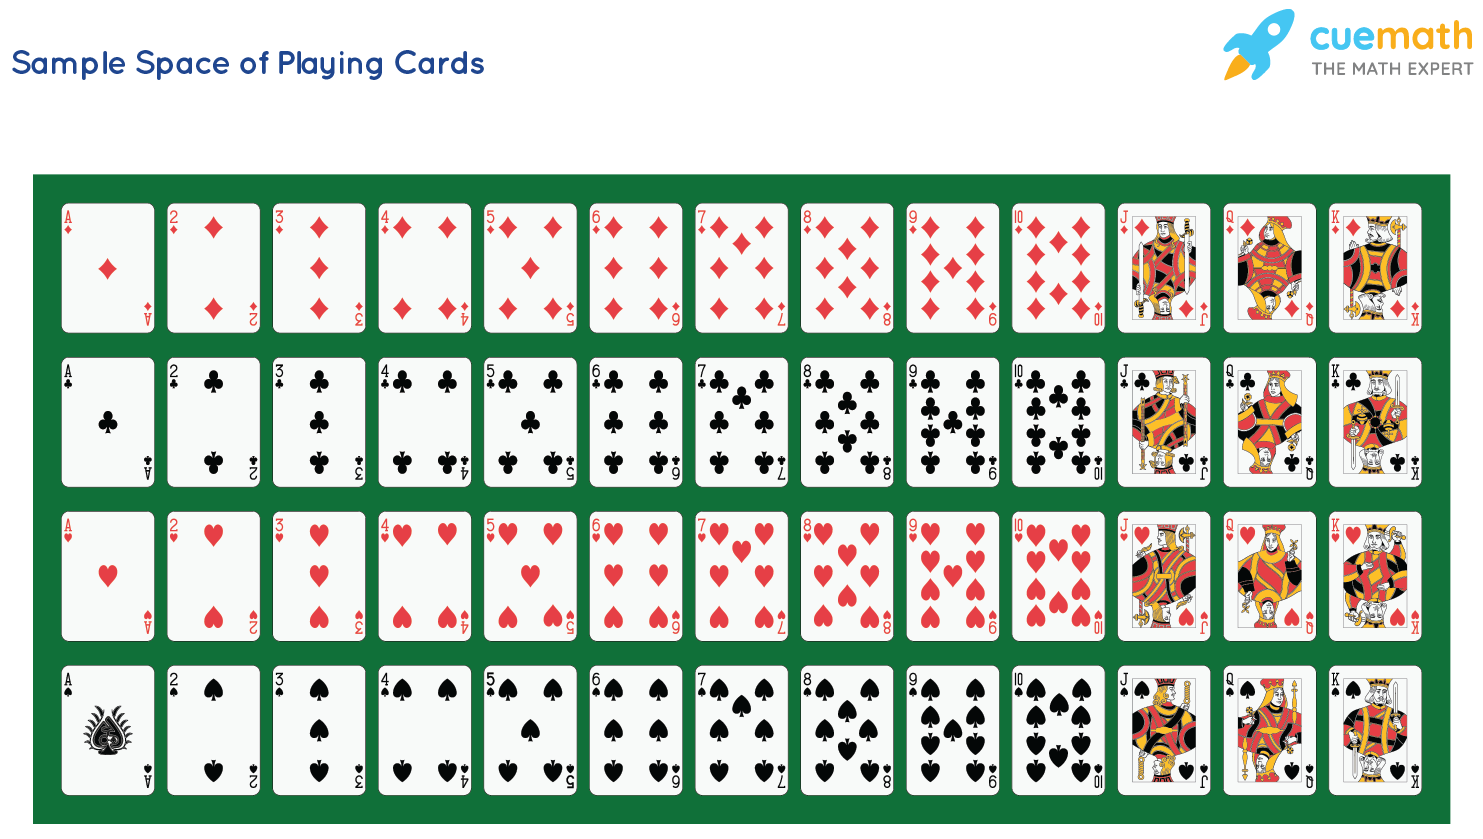 Sample Space of Playing Cards